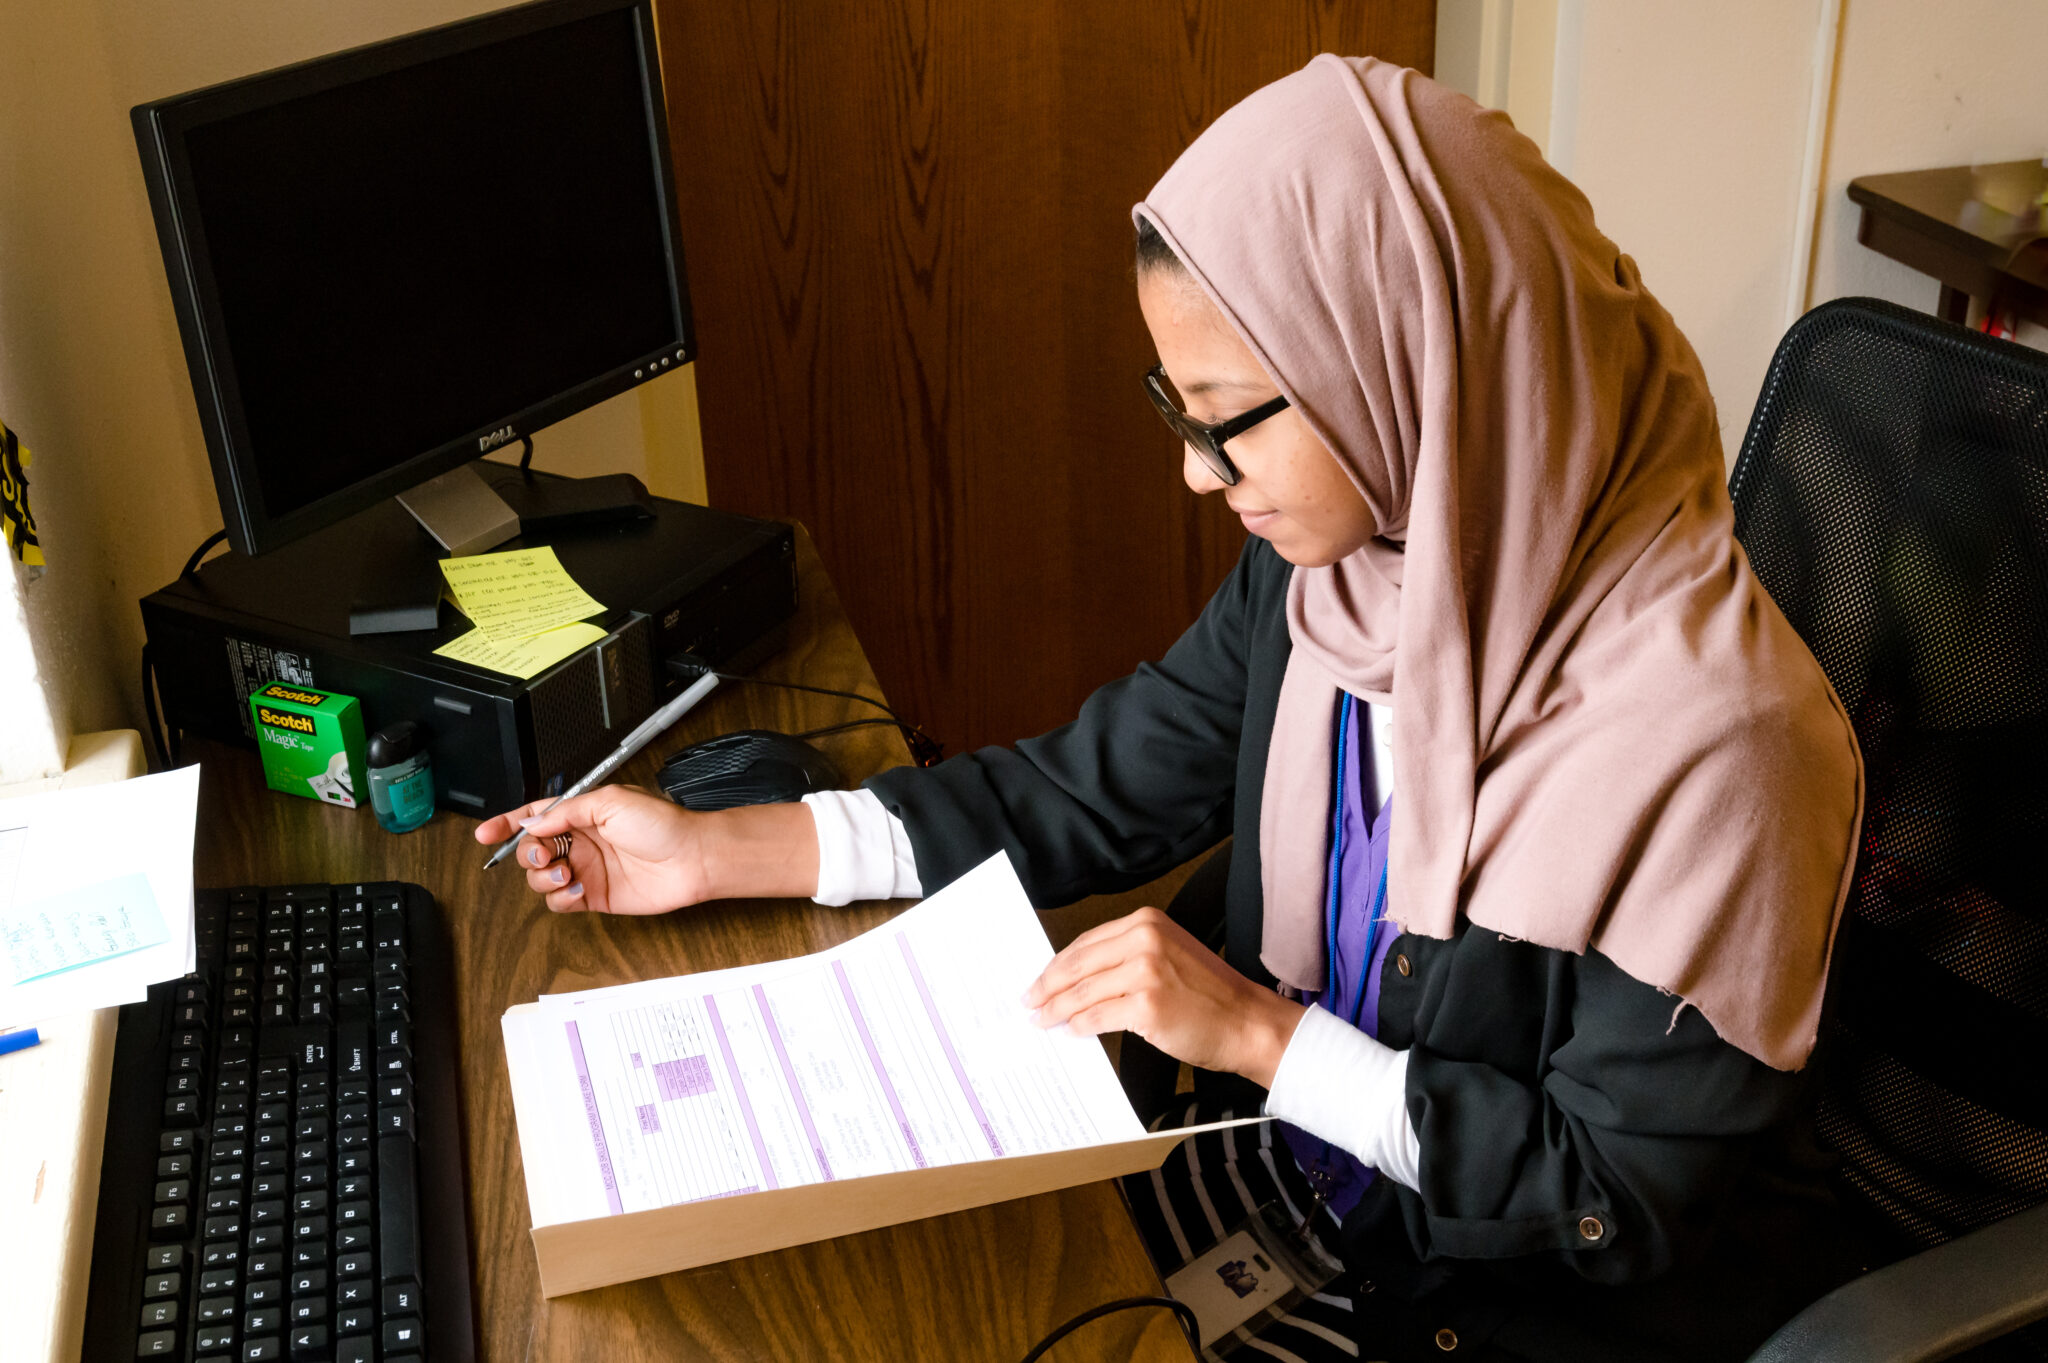 A young woman in a hijab and glasses reads a sheet of paper in front of her intently